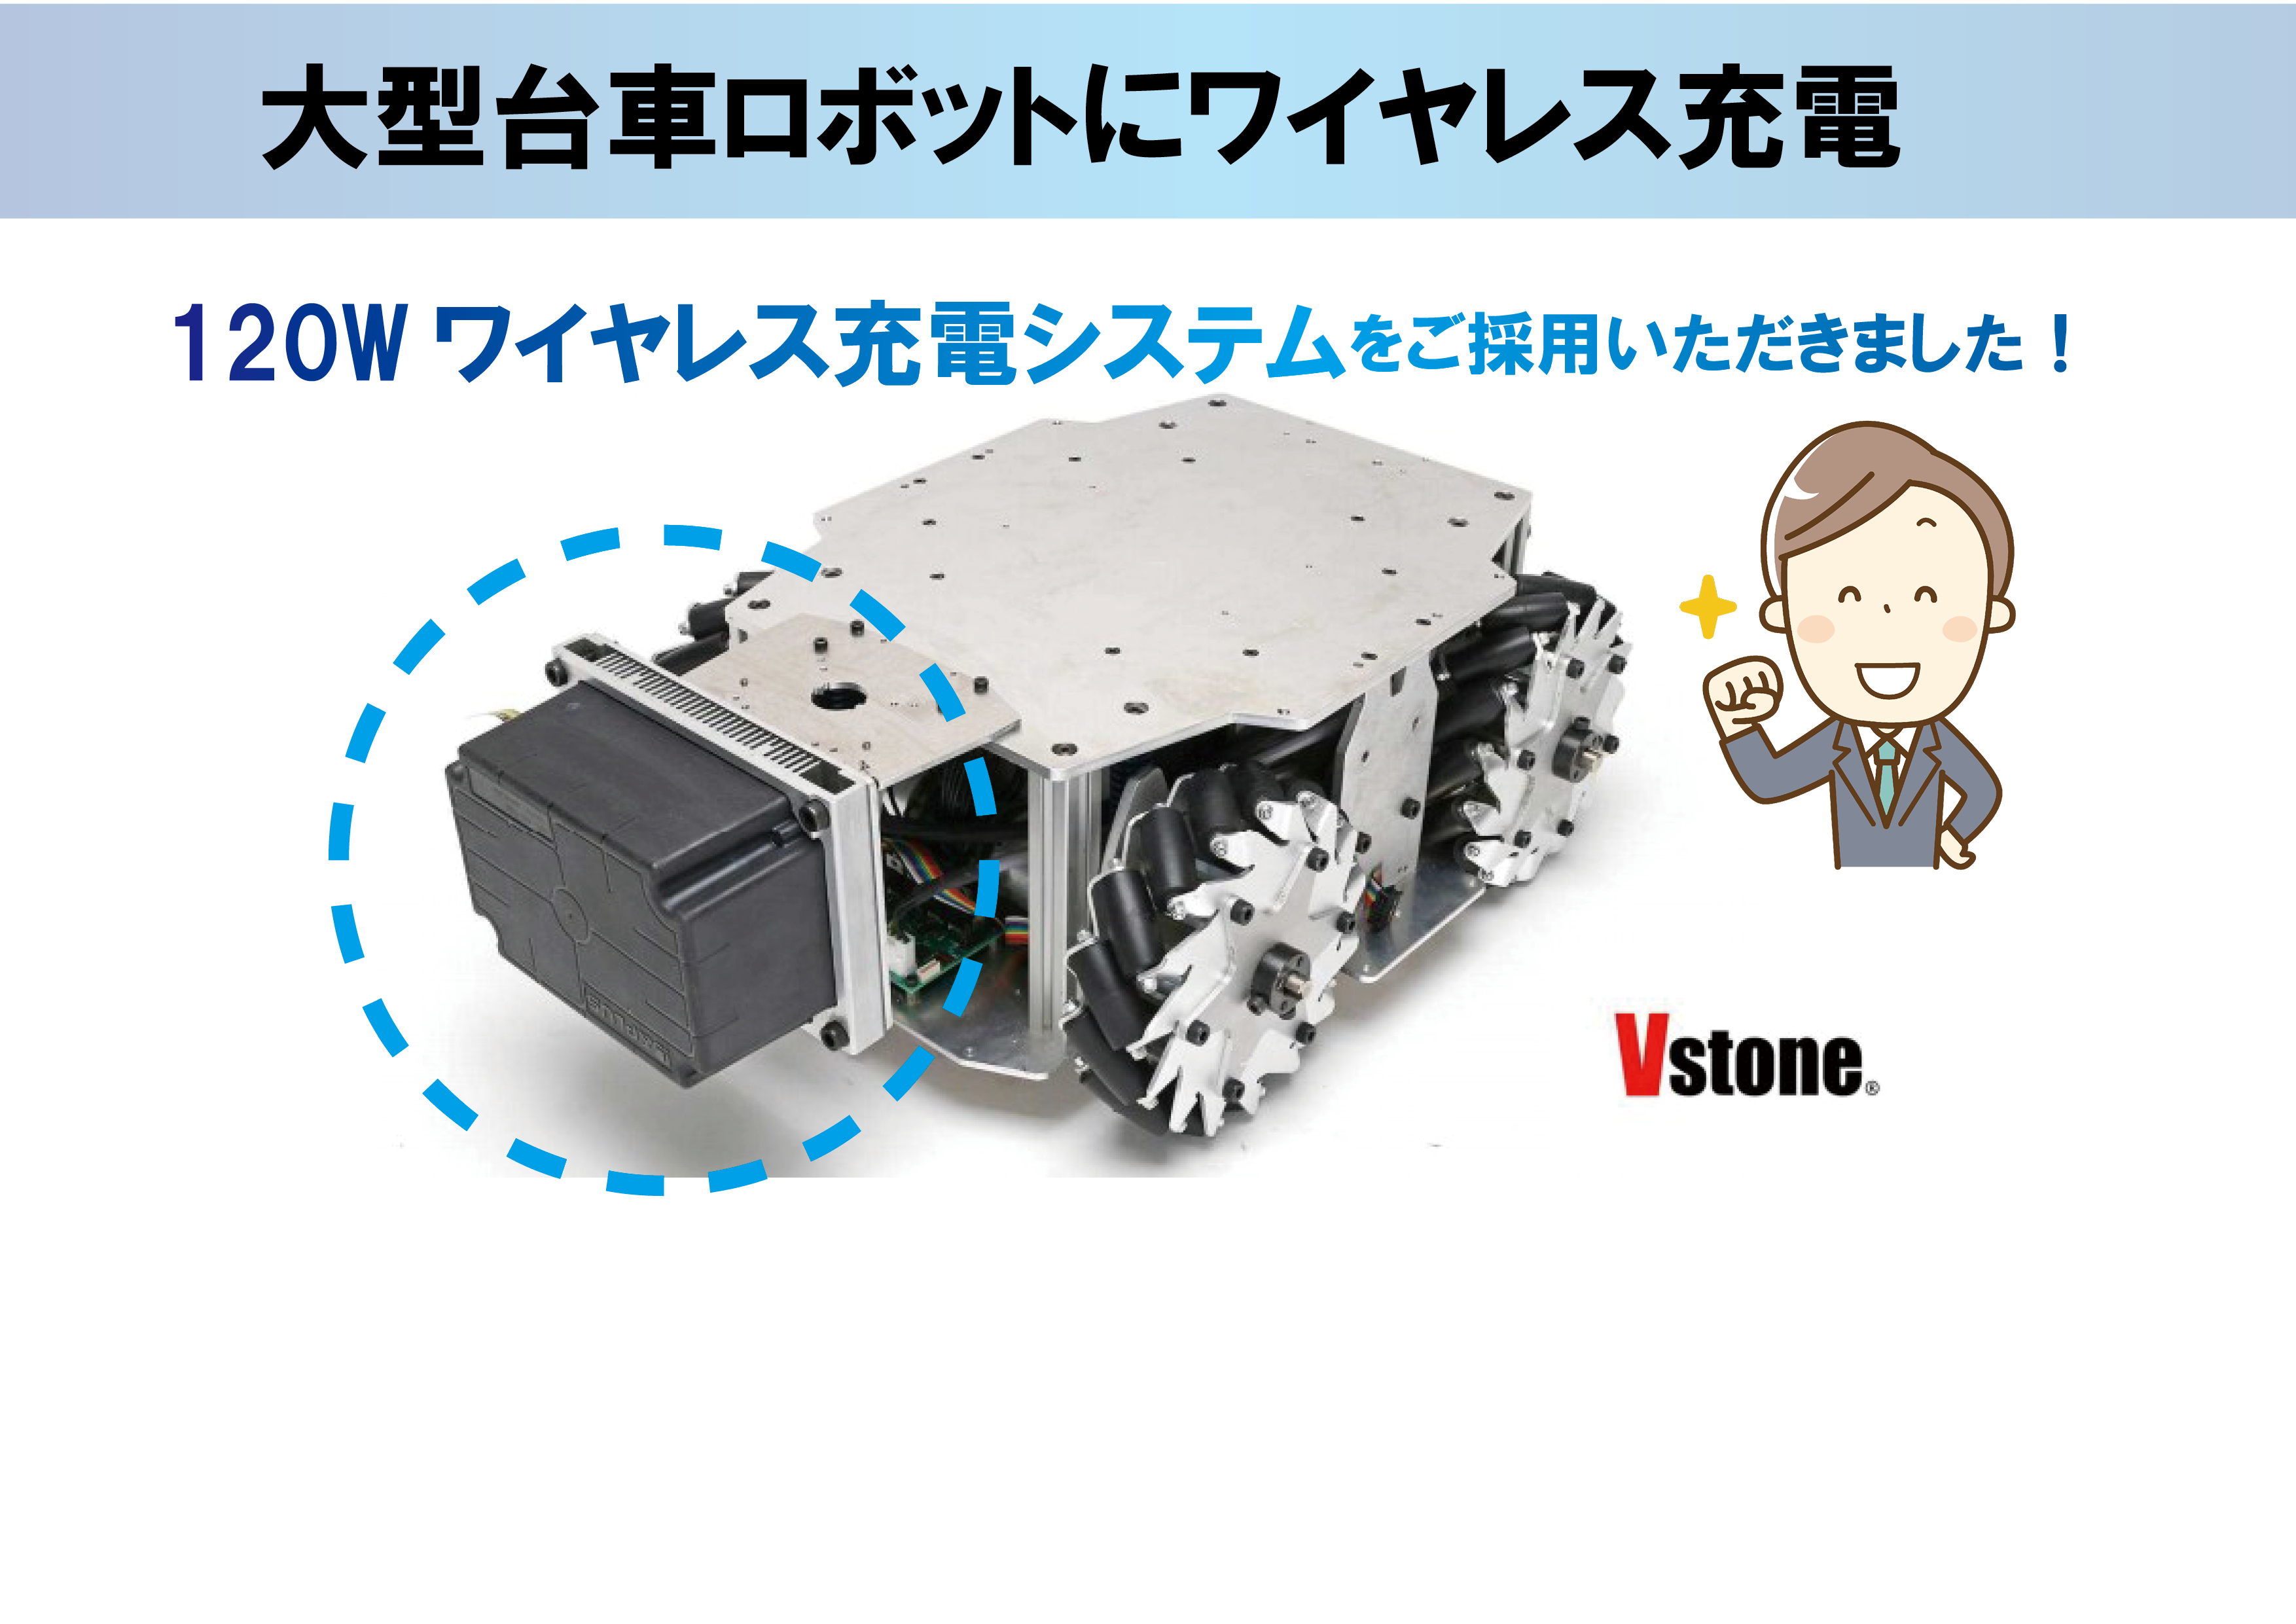 [Introduction example] 120W wireless charging system has been adopted for large trolley robots of Vstone Co., Ltd.